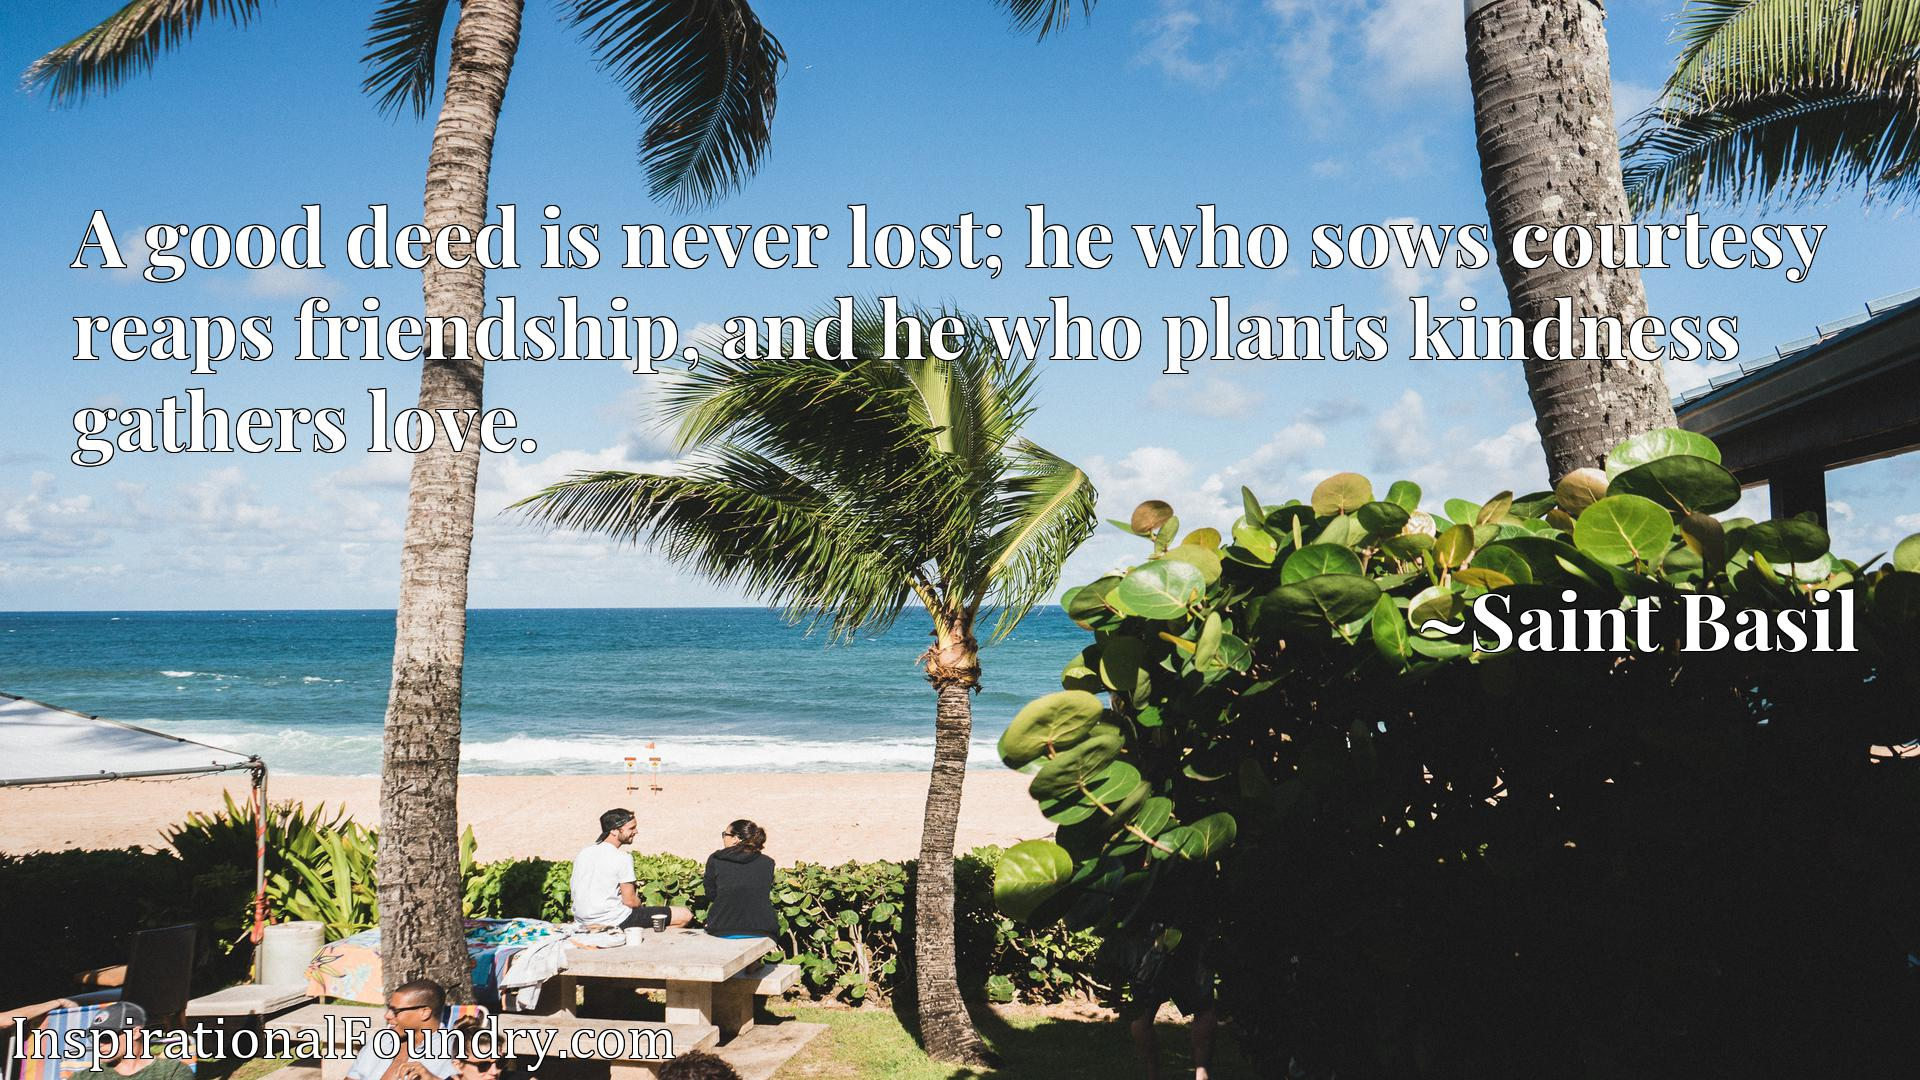 A good deed is never lost; he who sows courtesy reaps friendship, and he who plants kindness gathers love.